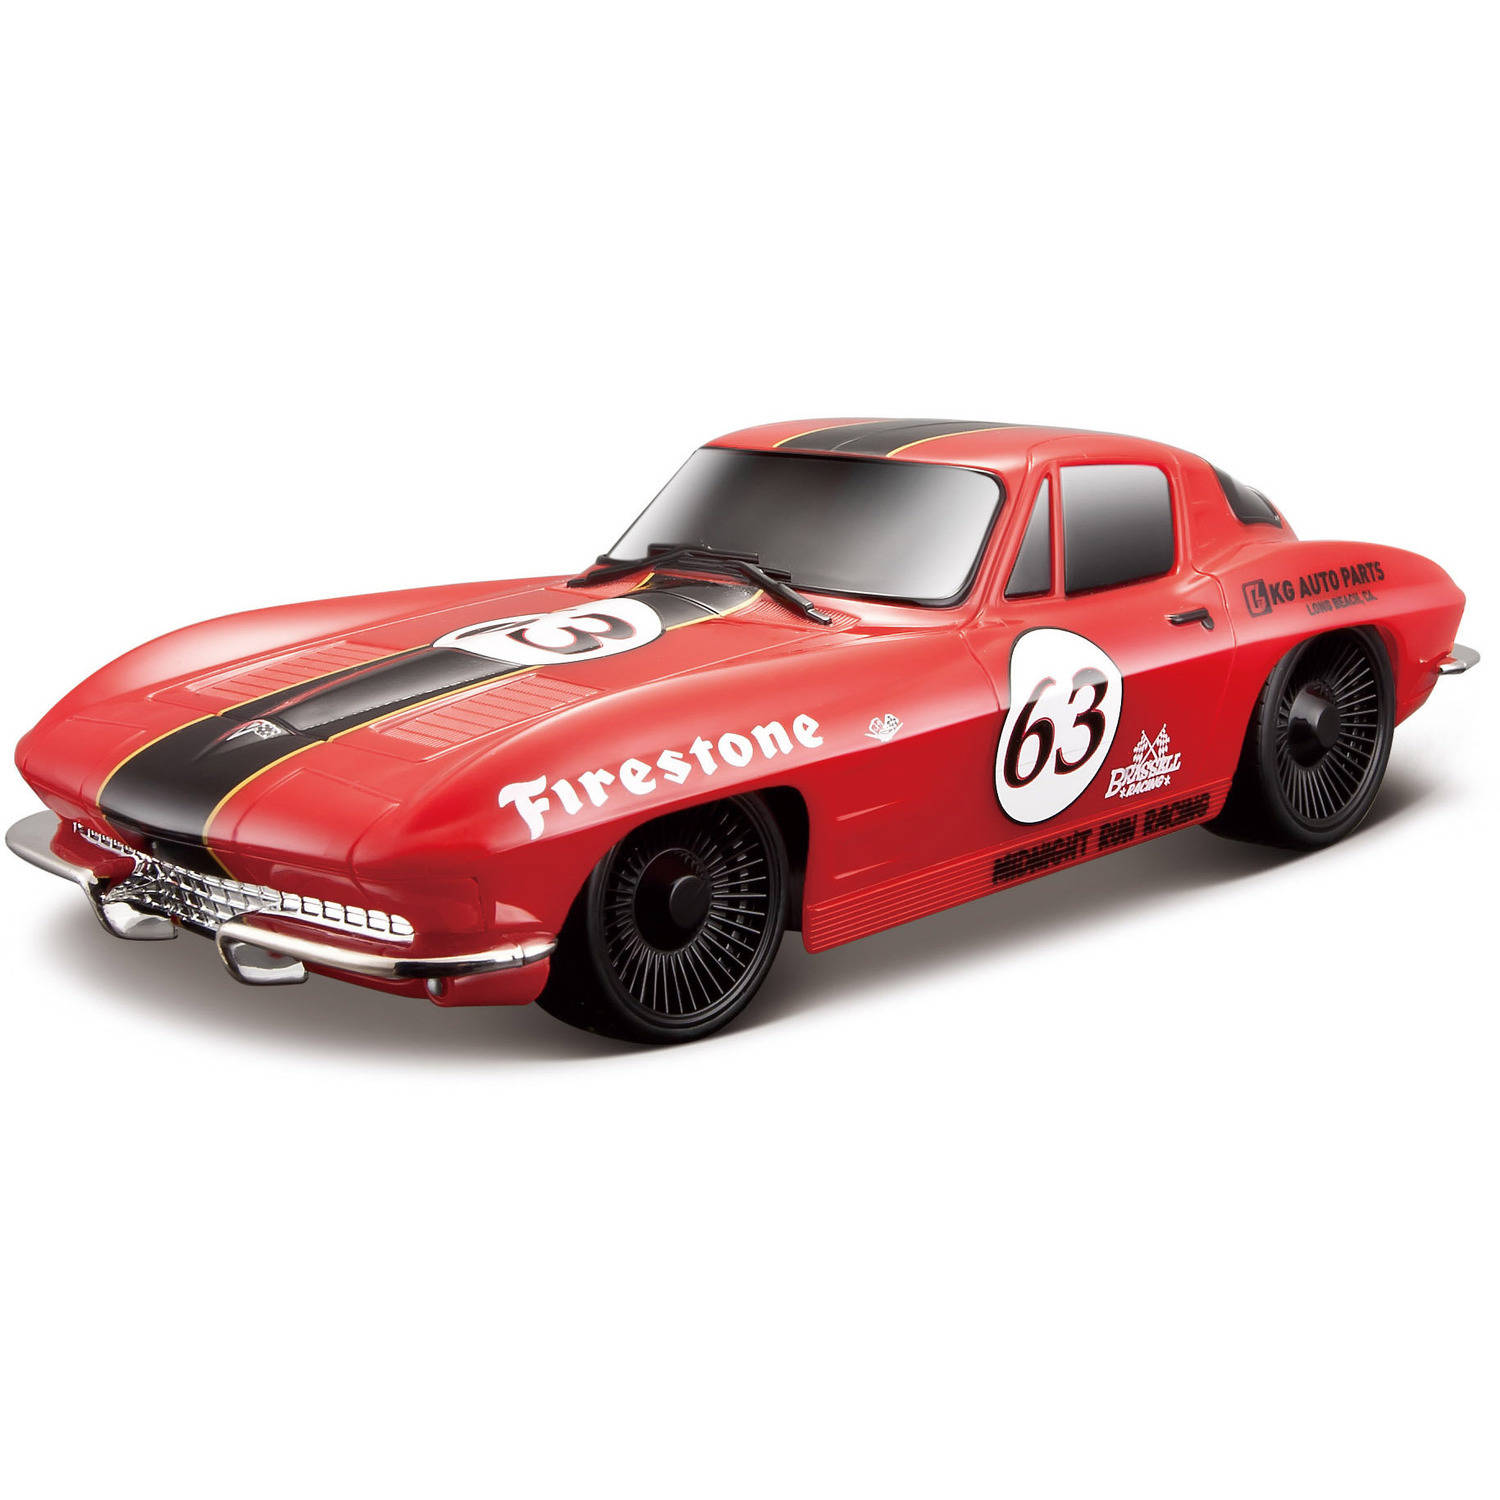 Maisto 1:24 Remote Control 1963 Corvette Red Classic Race